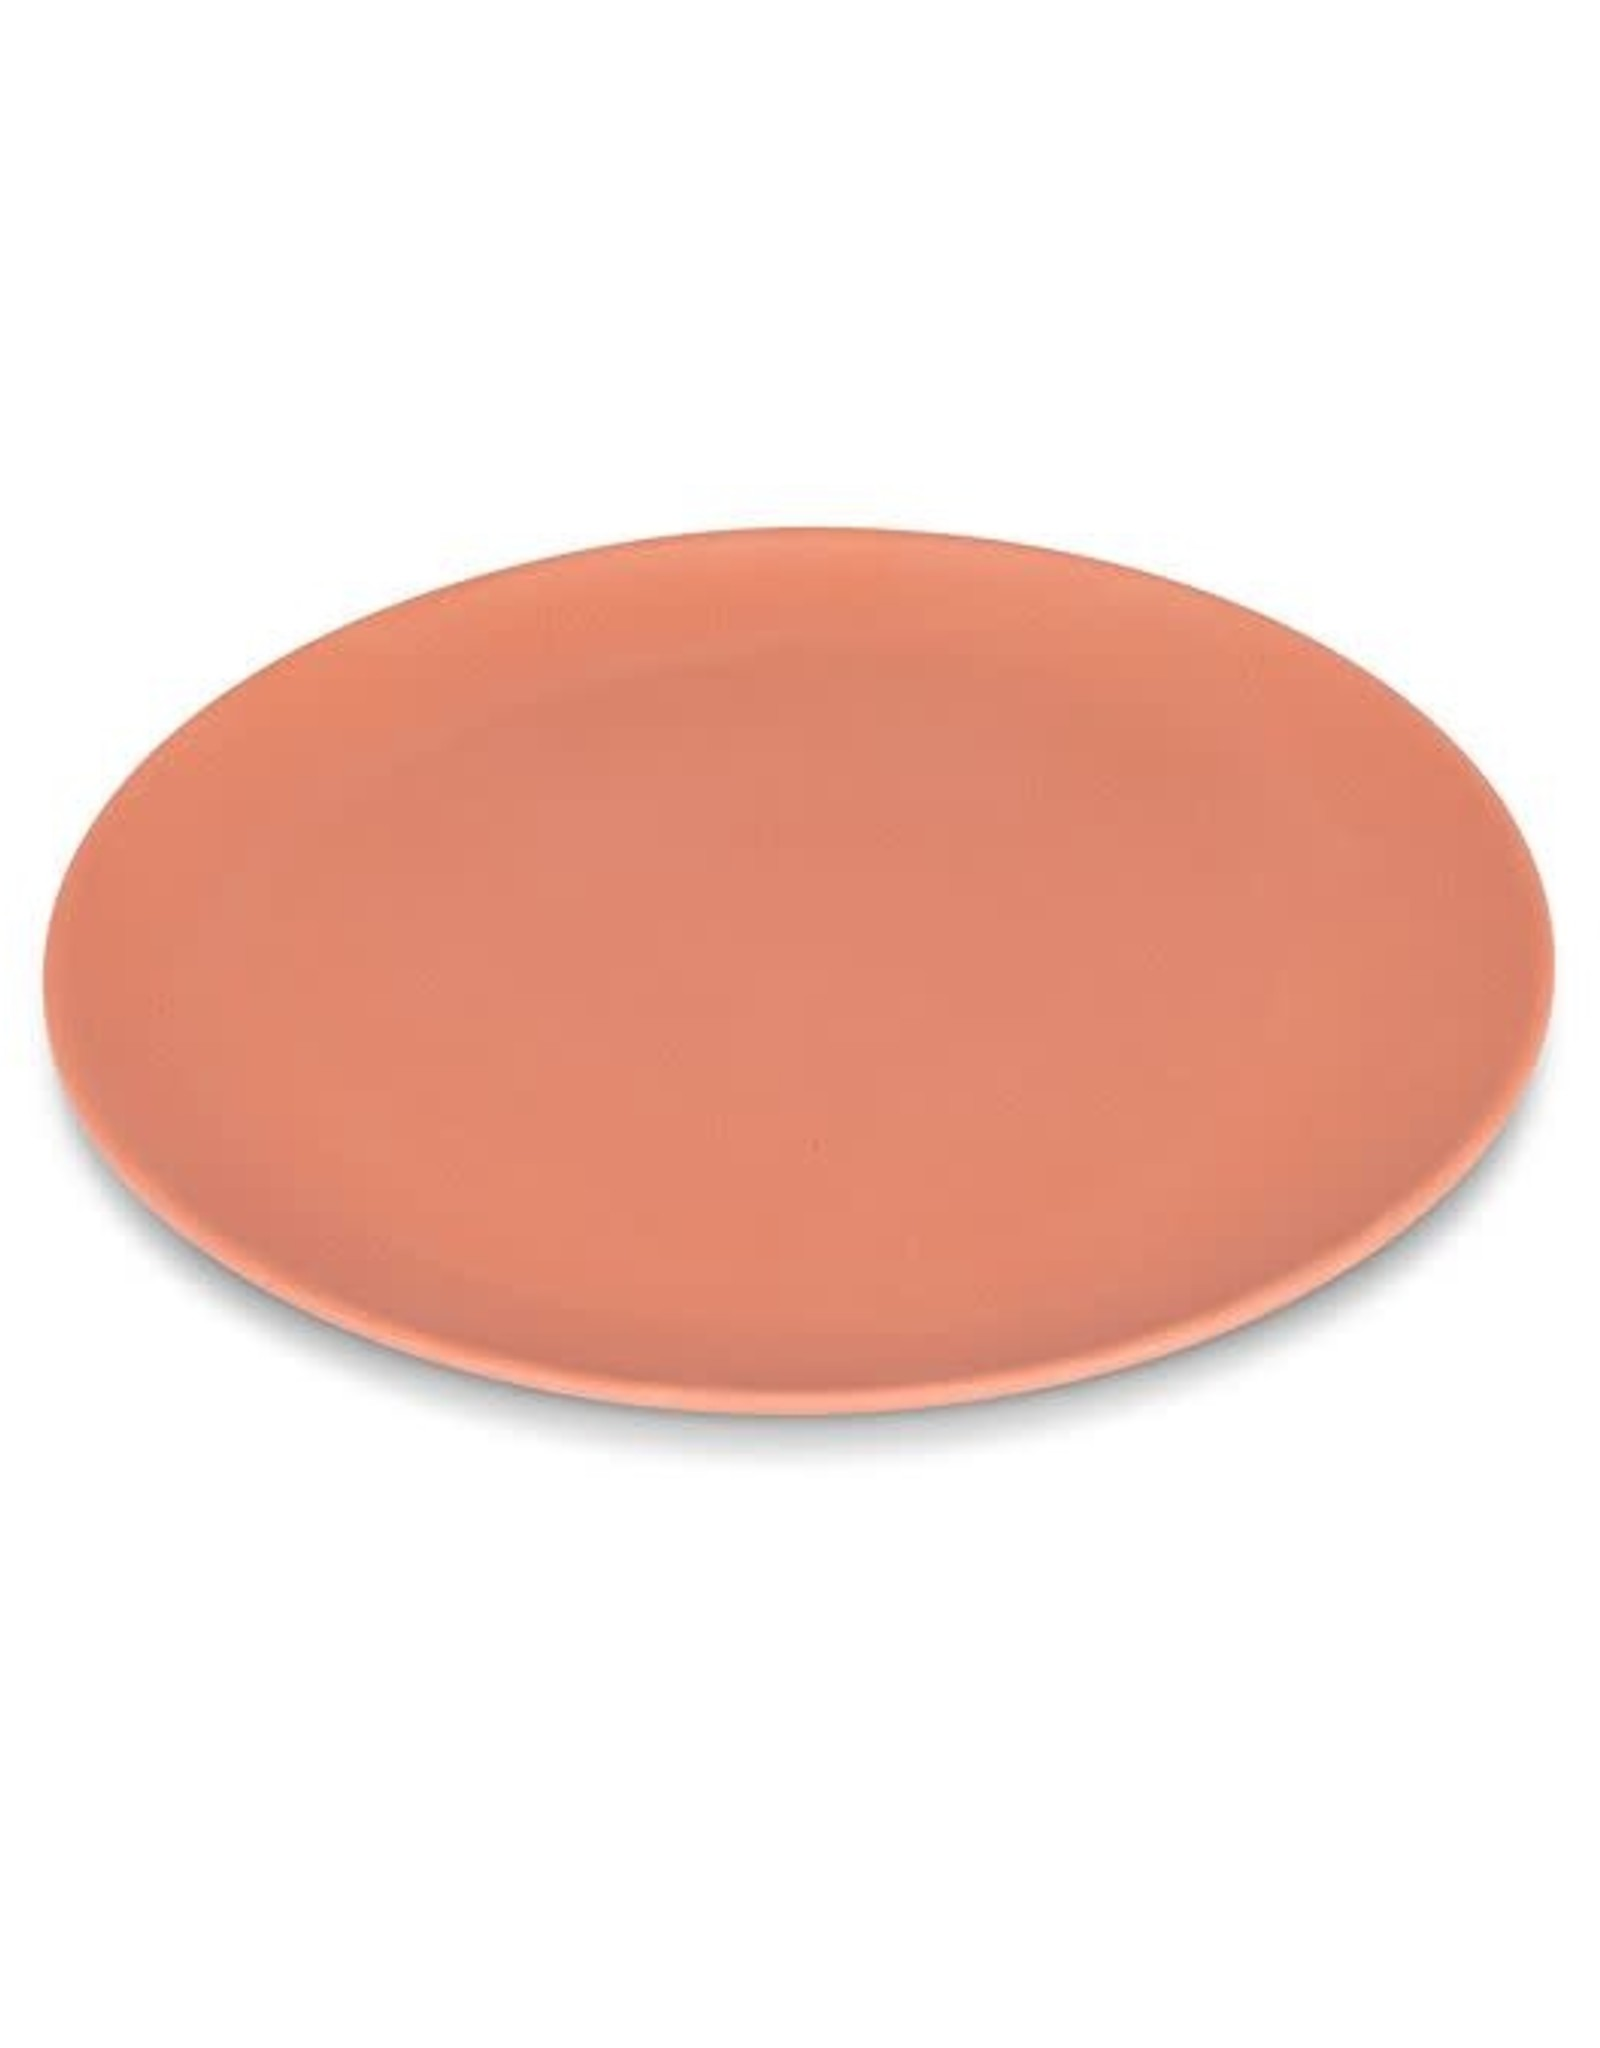 Bamboo Dinner Plate - Set of 4 - Coral